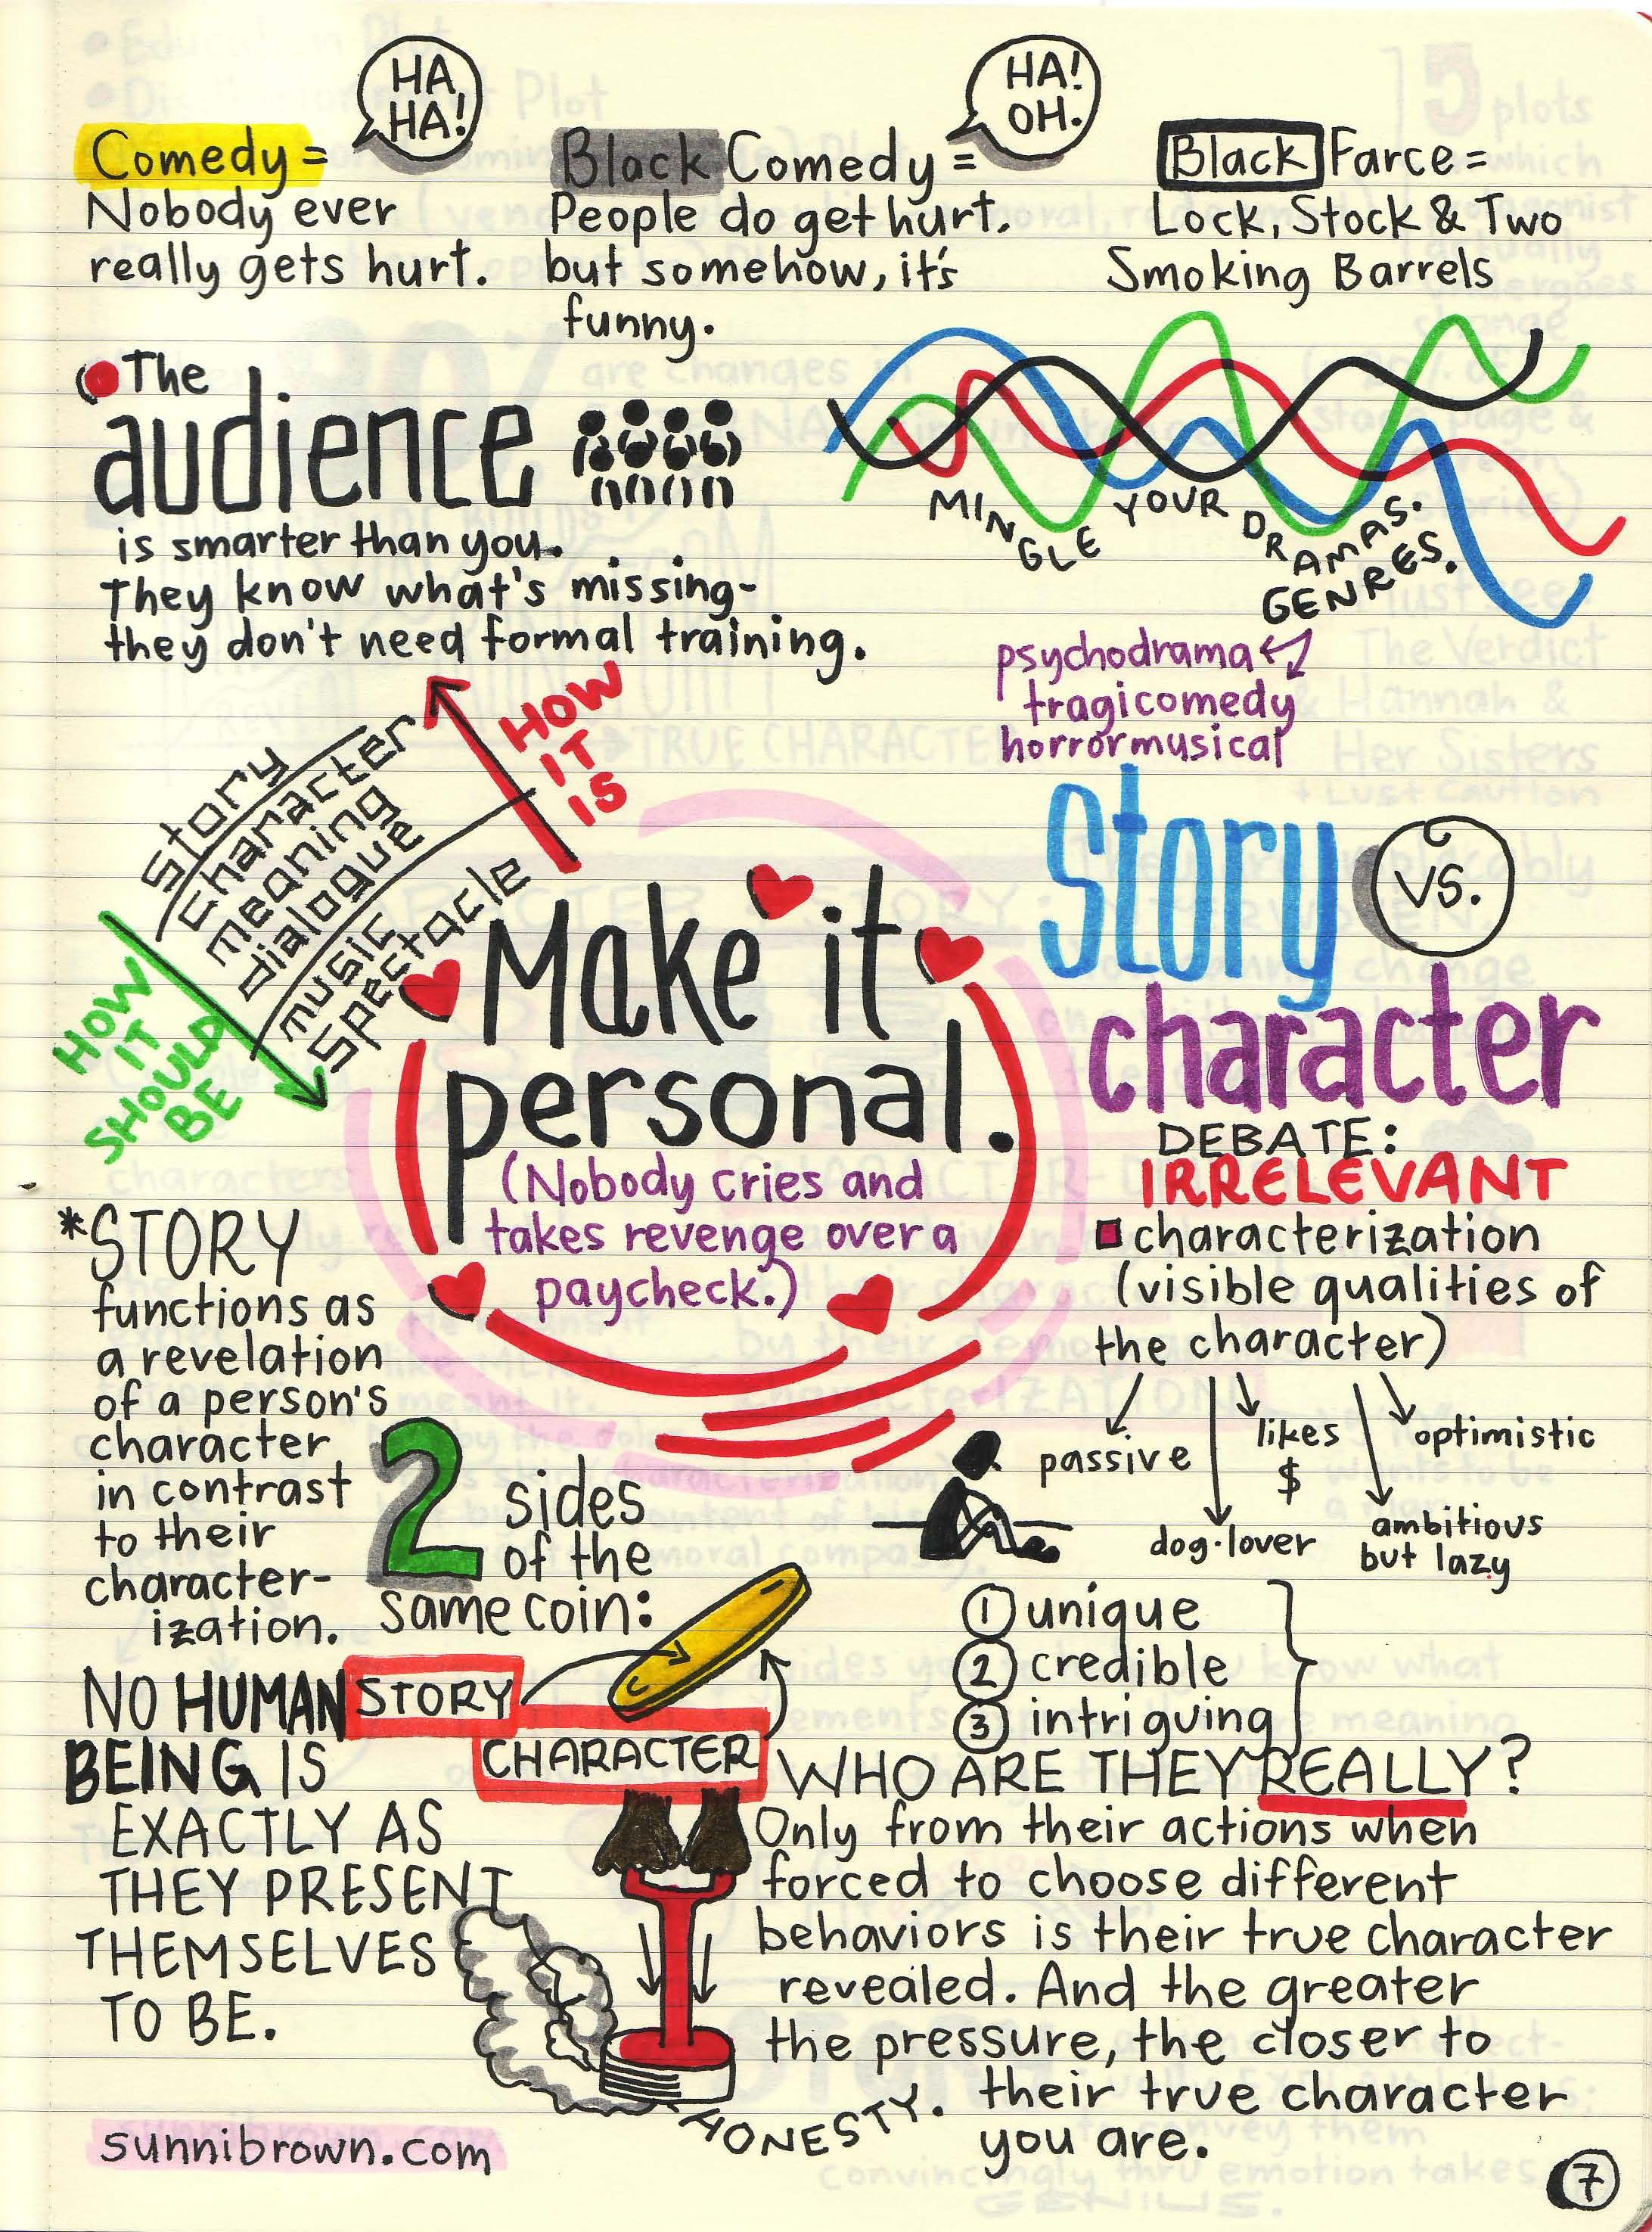 7 of 14 Robert McKee  Story professor London, England April 8-11, 2011 Seminar visualized by Sunni Brown For one single image of all 14 pages please visit: http://pin.it/waXPxSo